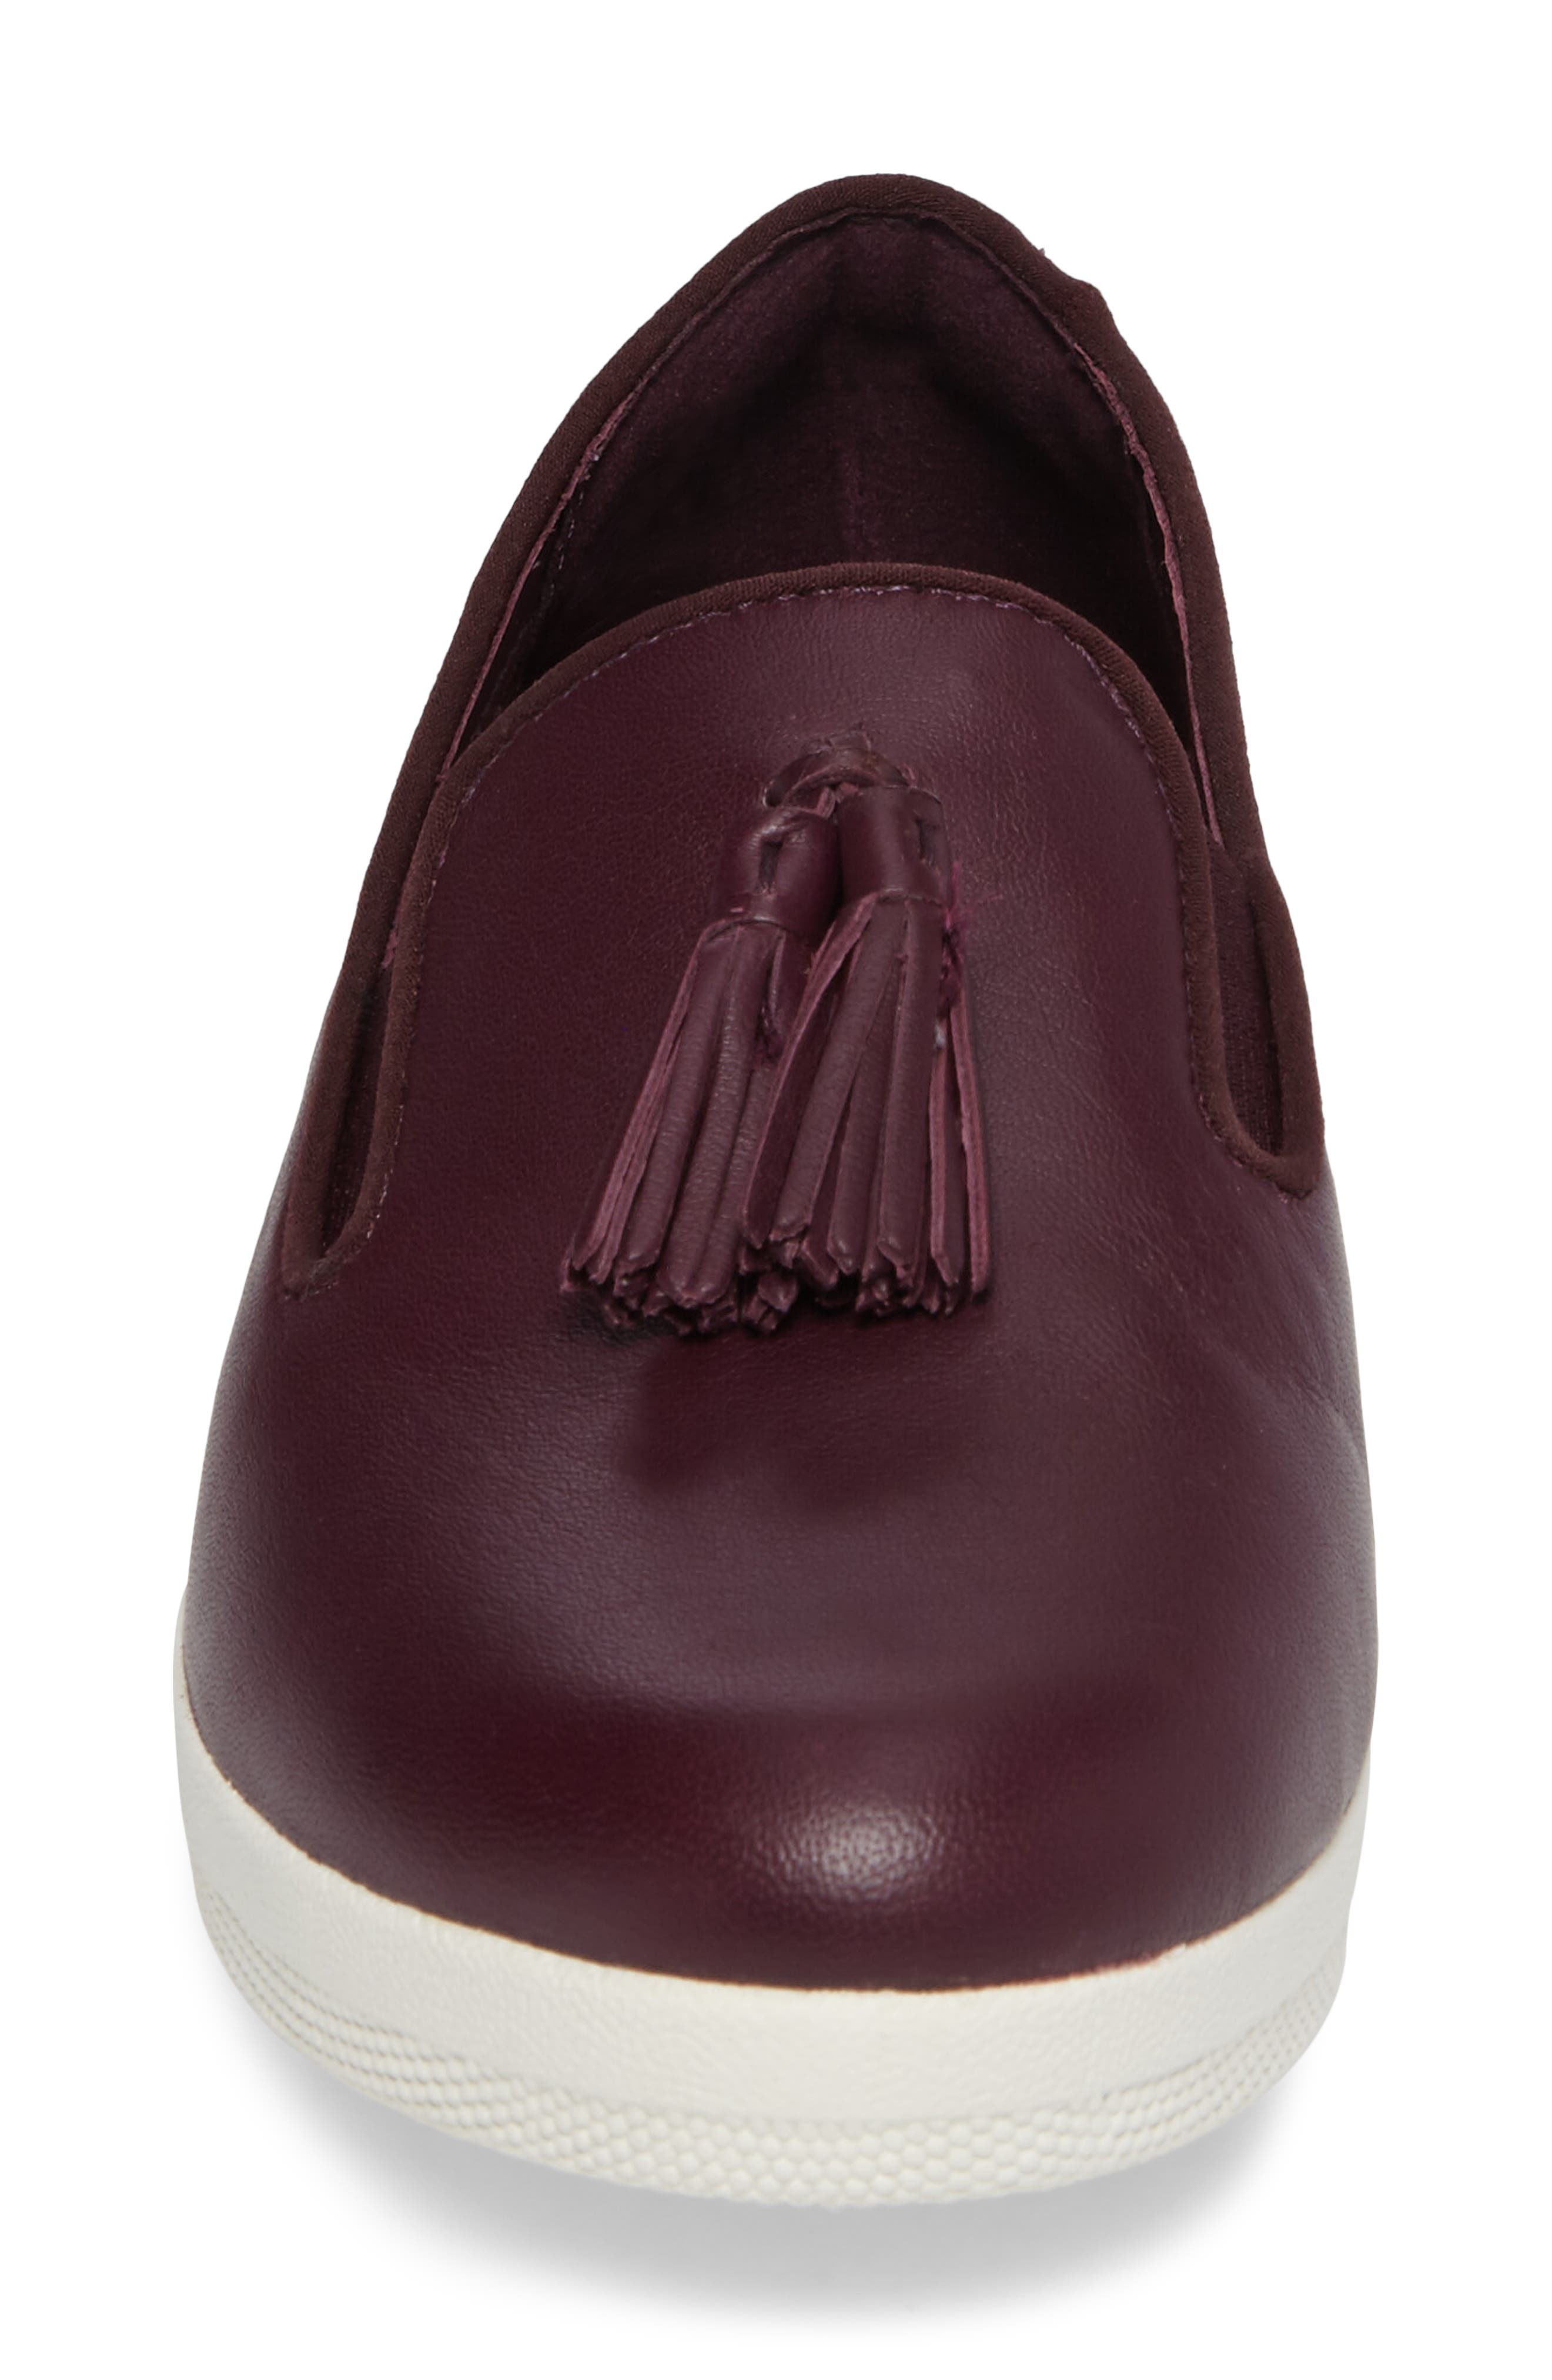 Tassle Superskate Wedge Sneaker,                             Alternate thumbnail 4, color,                             Deep Plum Leather